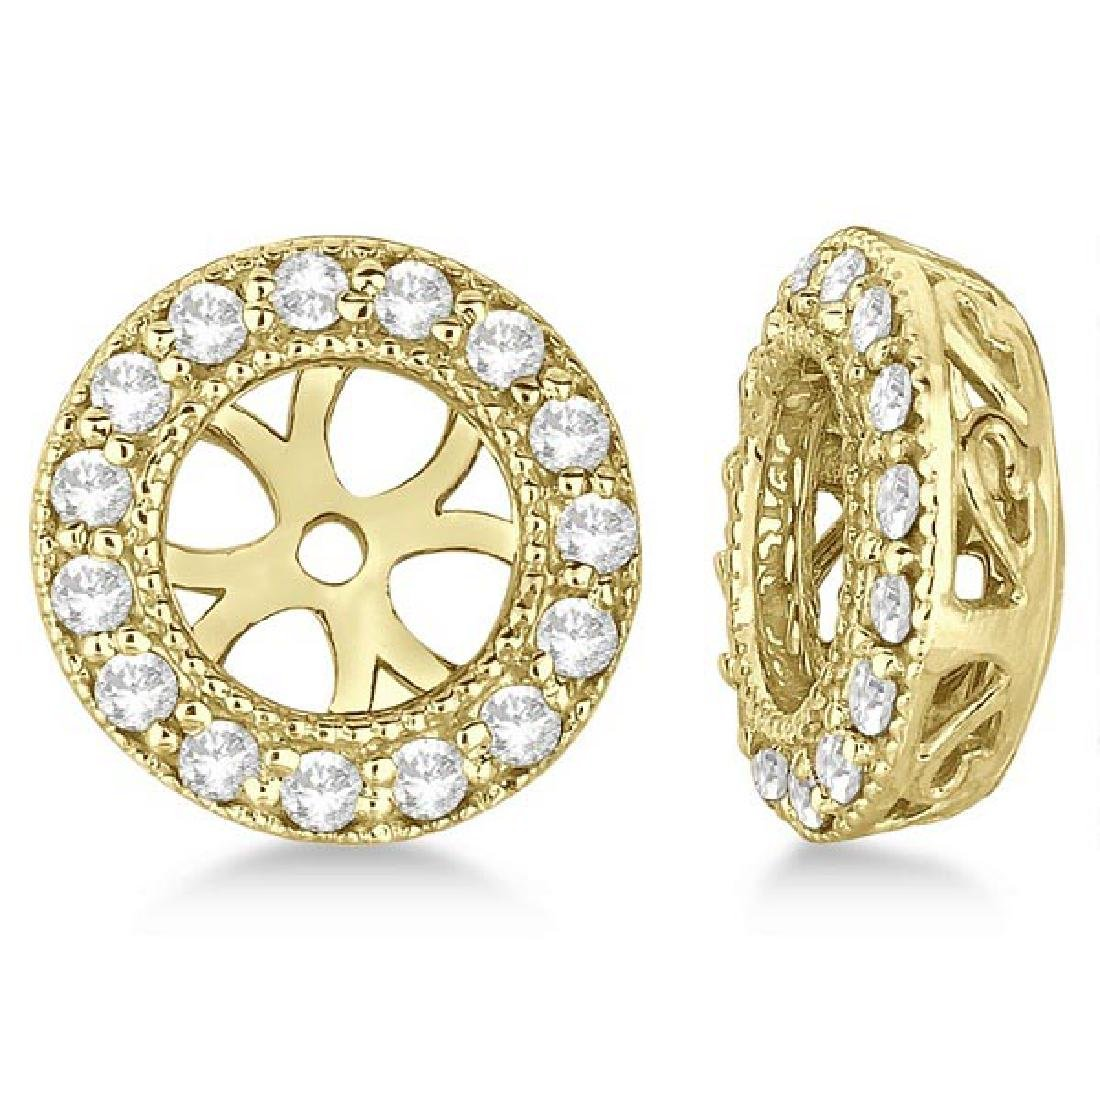 Vintage Round Cut Diamond Earring Jackets 14k Yellow Go